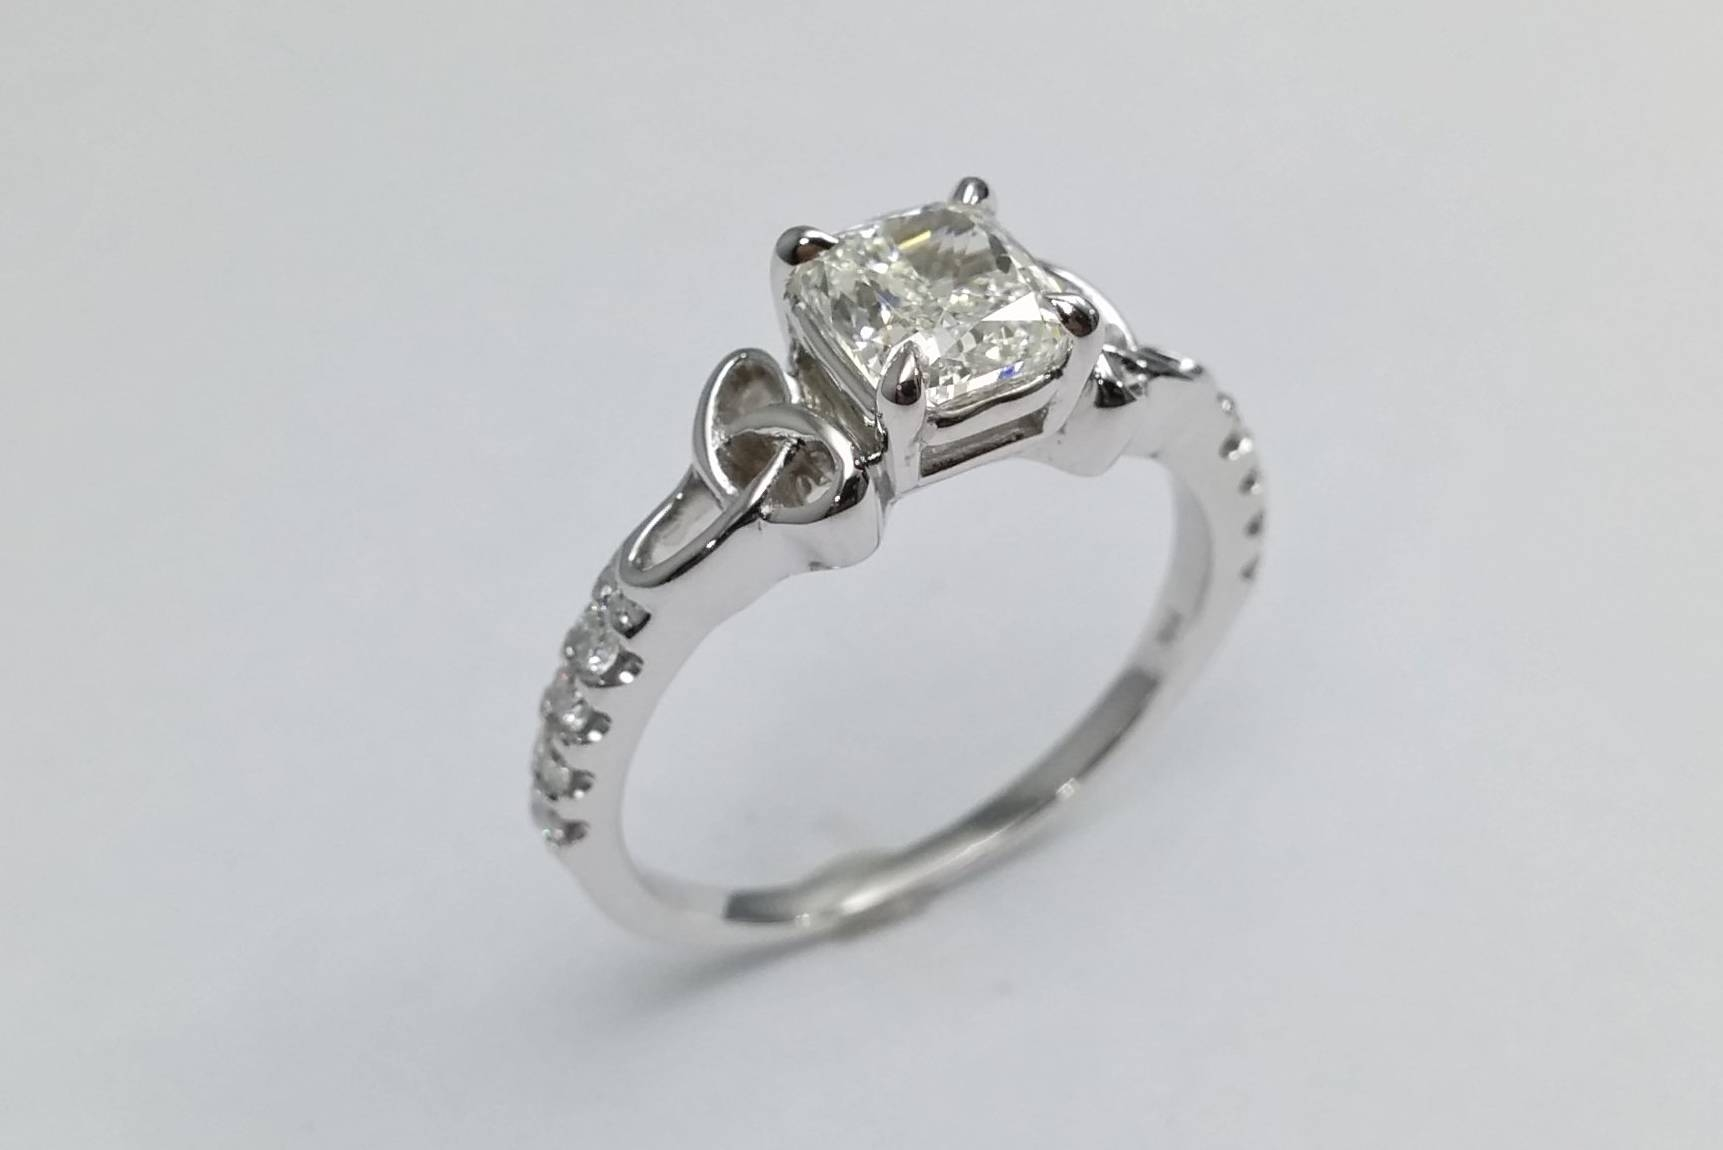 Celtic – Engagement Rings From Mdc Diamonds Nyc With Regard To Celtic Engagement Rings (Gallery 6 of 15)